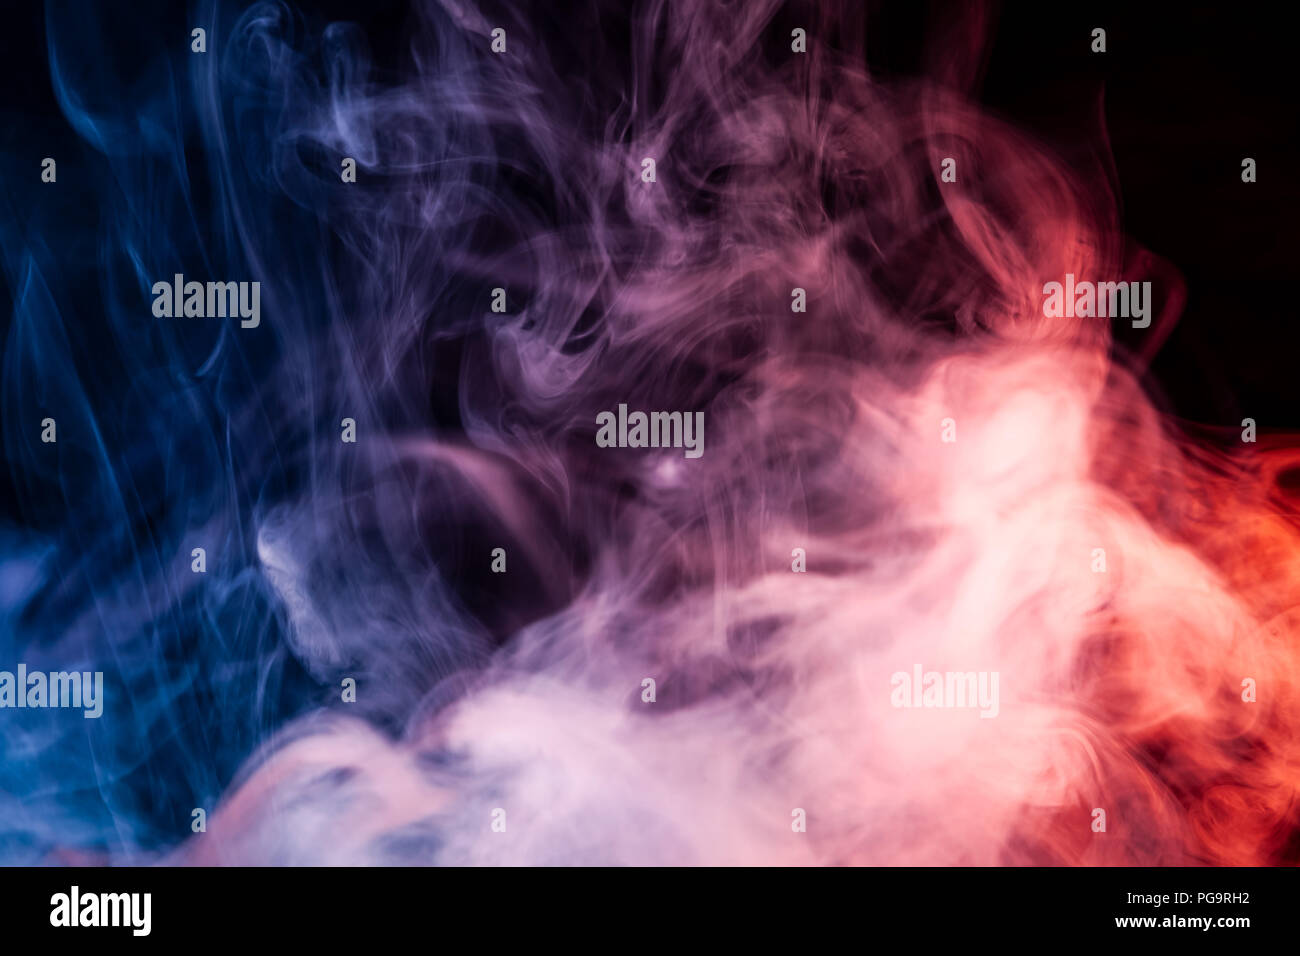 cloud of red blue and white smoke on a black isolated background background from the smoke of vape stock photo alamy https www alamy com cloud of red blue and white smoke on a black isolated background background from the smoke of vape image216574990 html